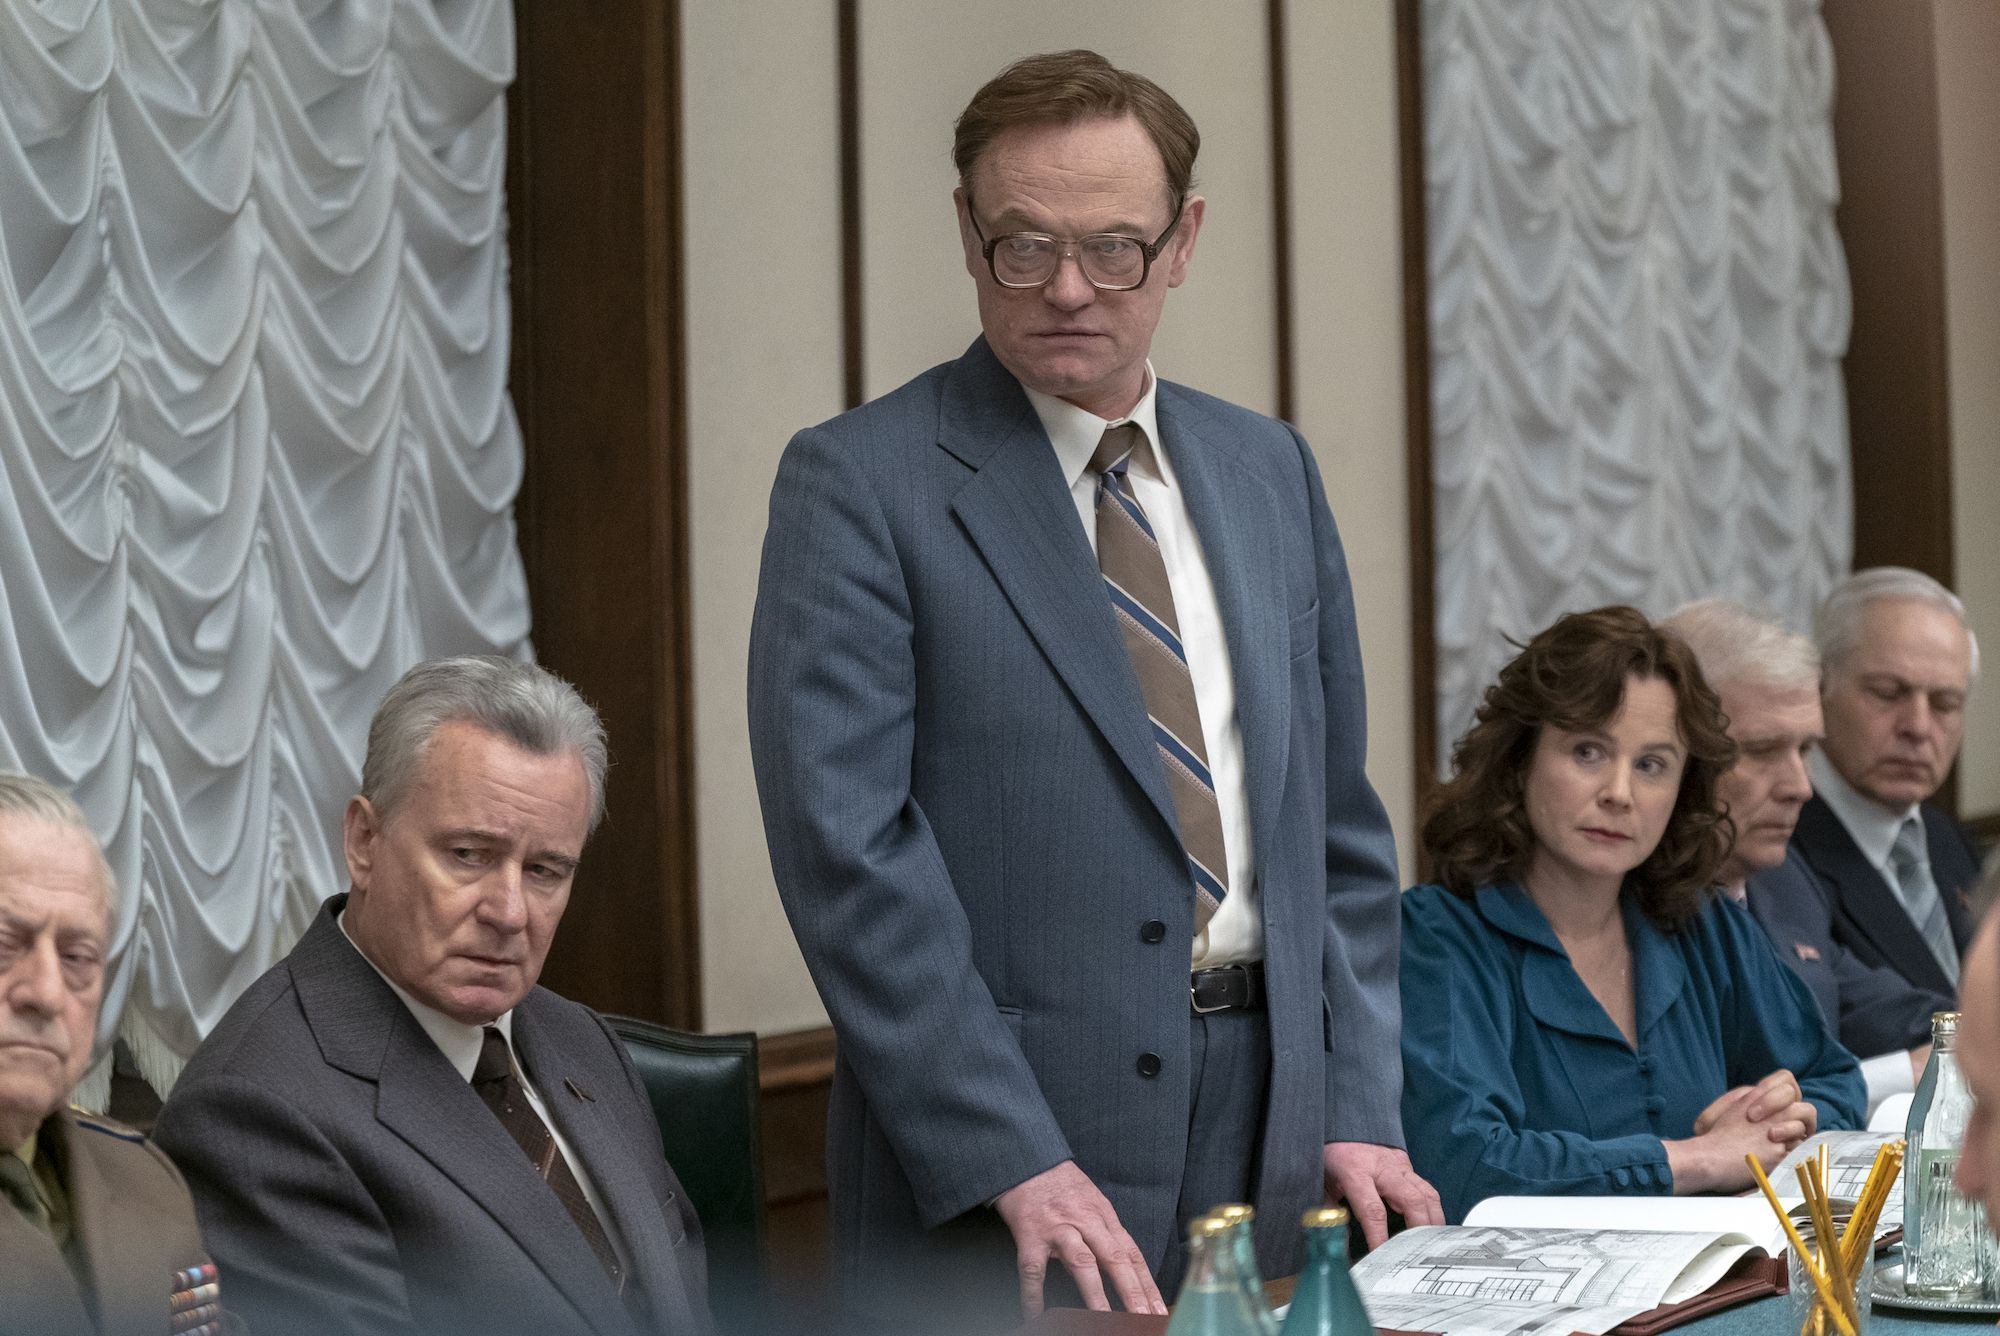 The True Story of HBO's 'Chernobyl' - What Really Happened at